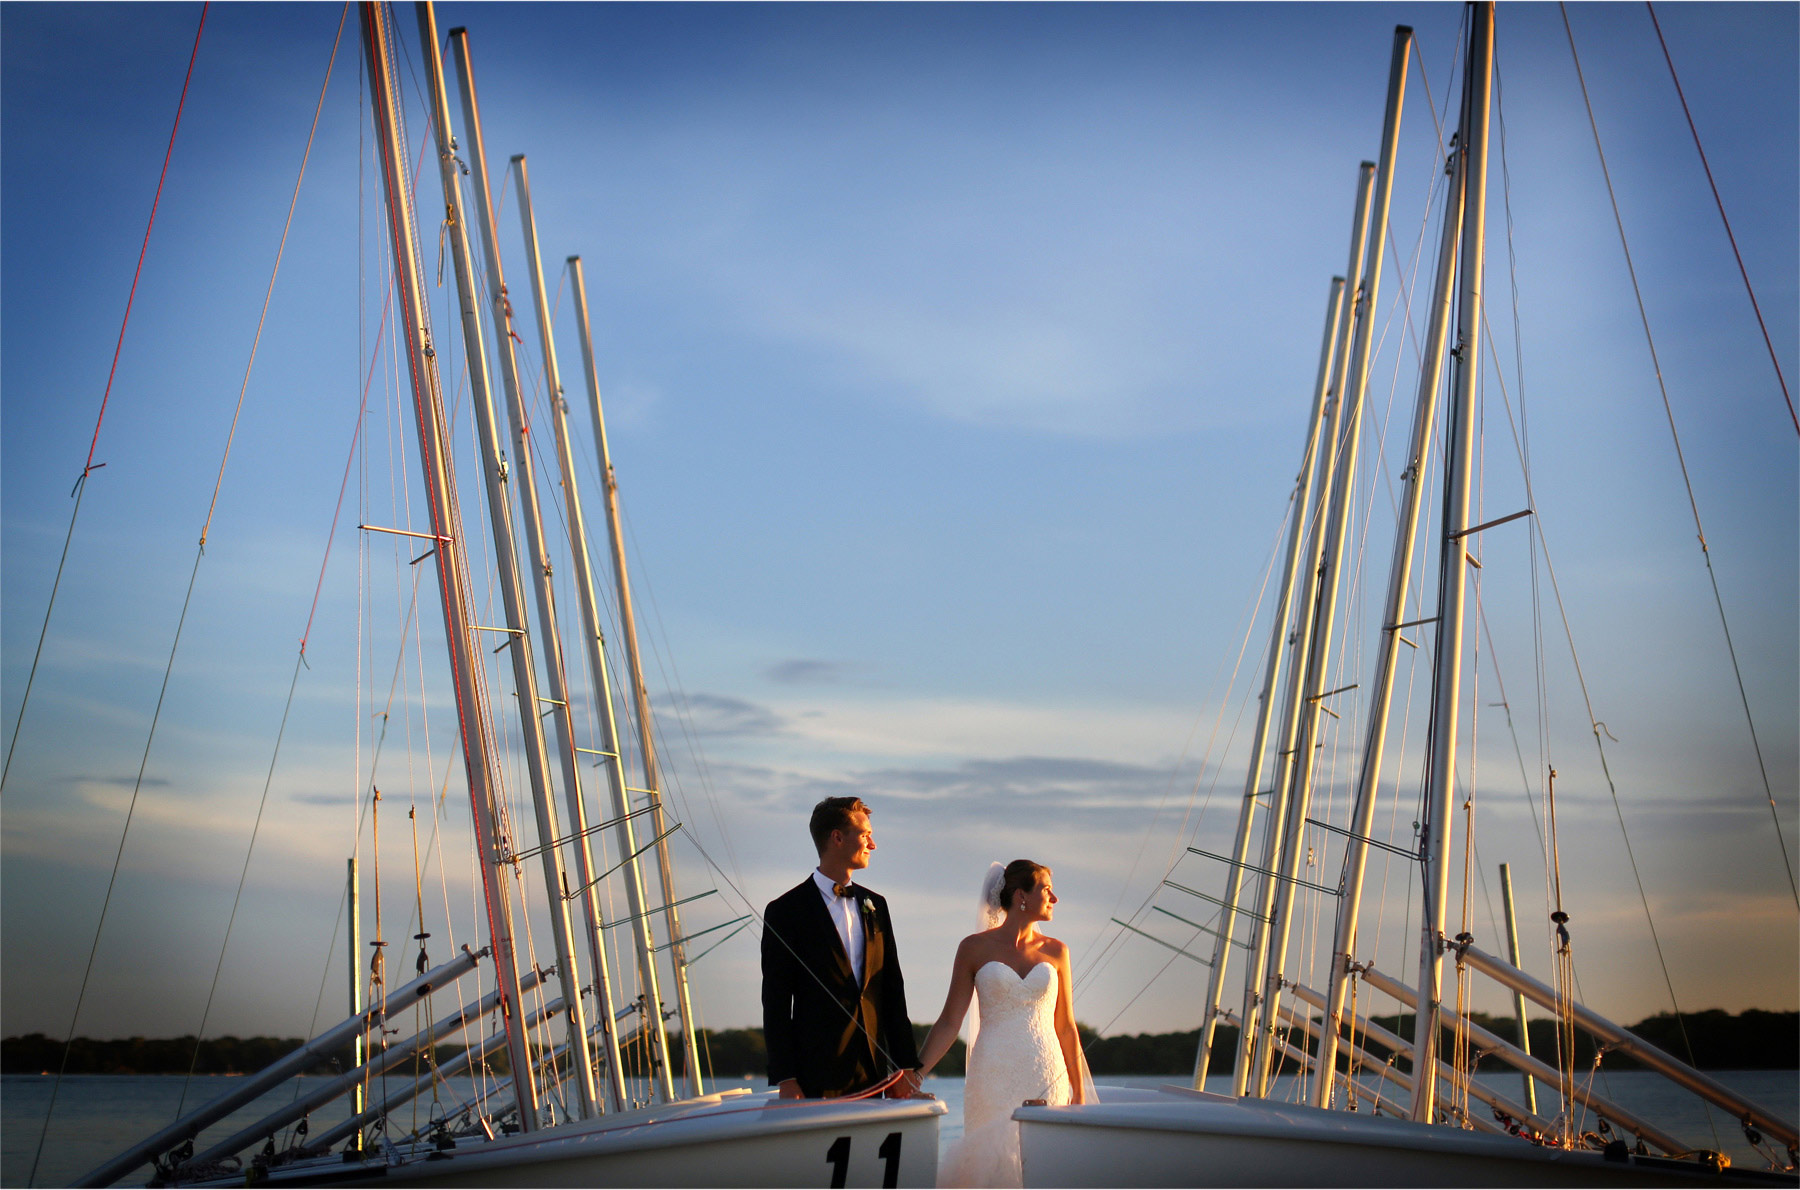 14-White-Bear-Lake-Minnesota-Wedding-Photographer-by-Andrew-Vick-Photography-Summer-Yacht-Club-Bride-Groom-Docks-Sailboats-Boats-Sunset-Hallie-and-Ted.jpg